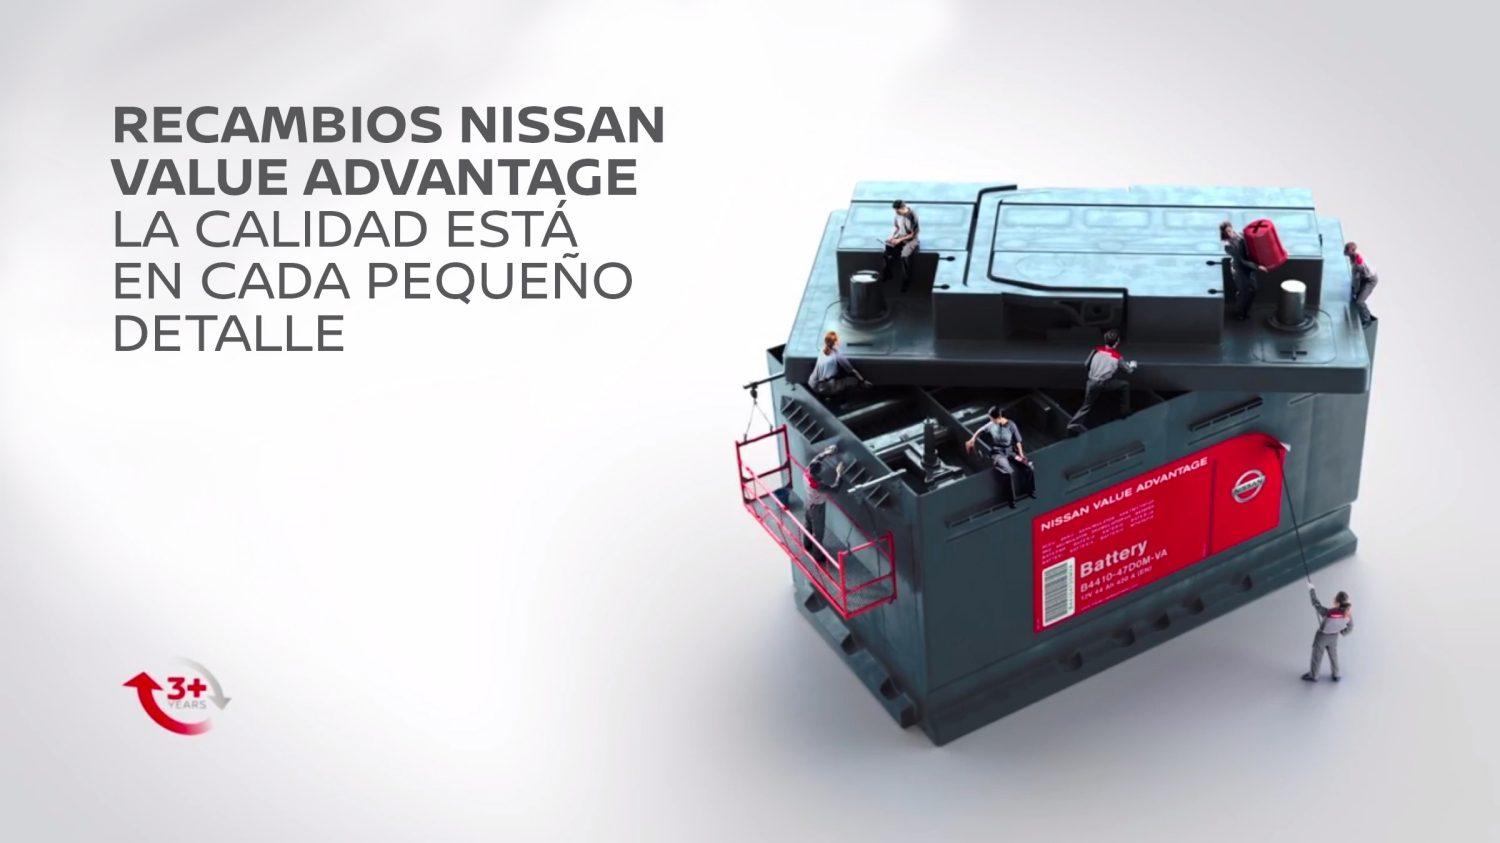 RECAMBIOS NISSAN VALUE ADVANTAGE